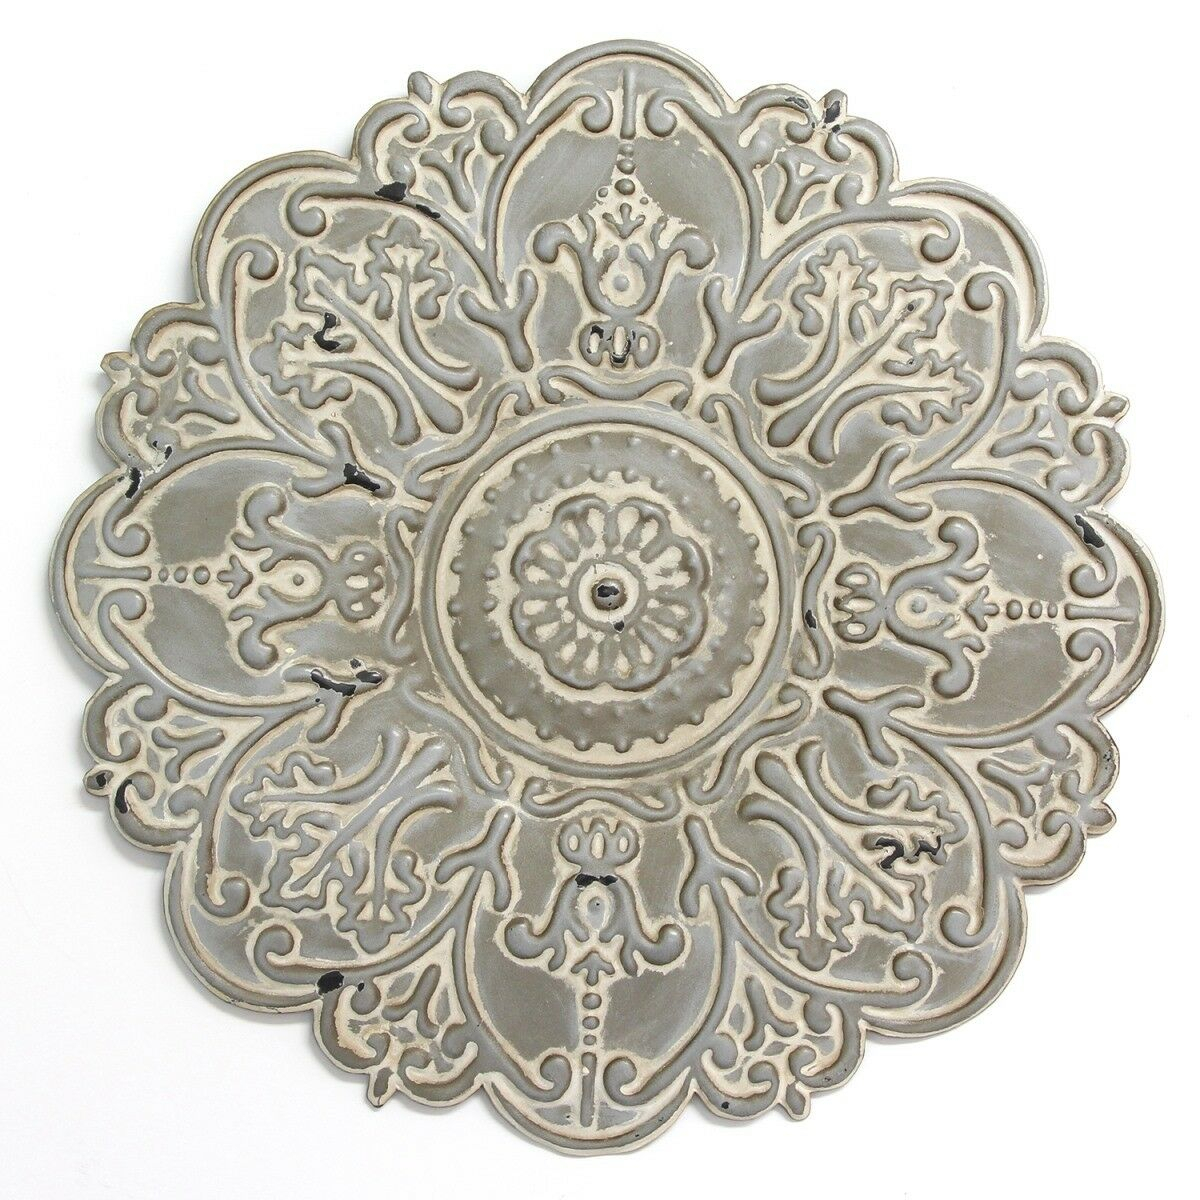 Newest Stratton Home Decor S11565 Small Medallion Wall Decor Grey Inside Small Medallion Wall Decor (Gallery 2 of 20)